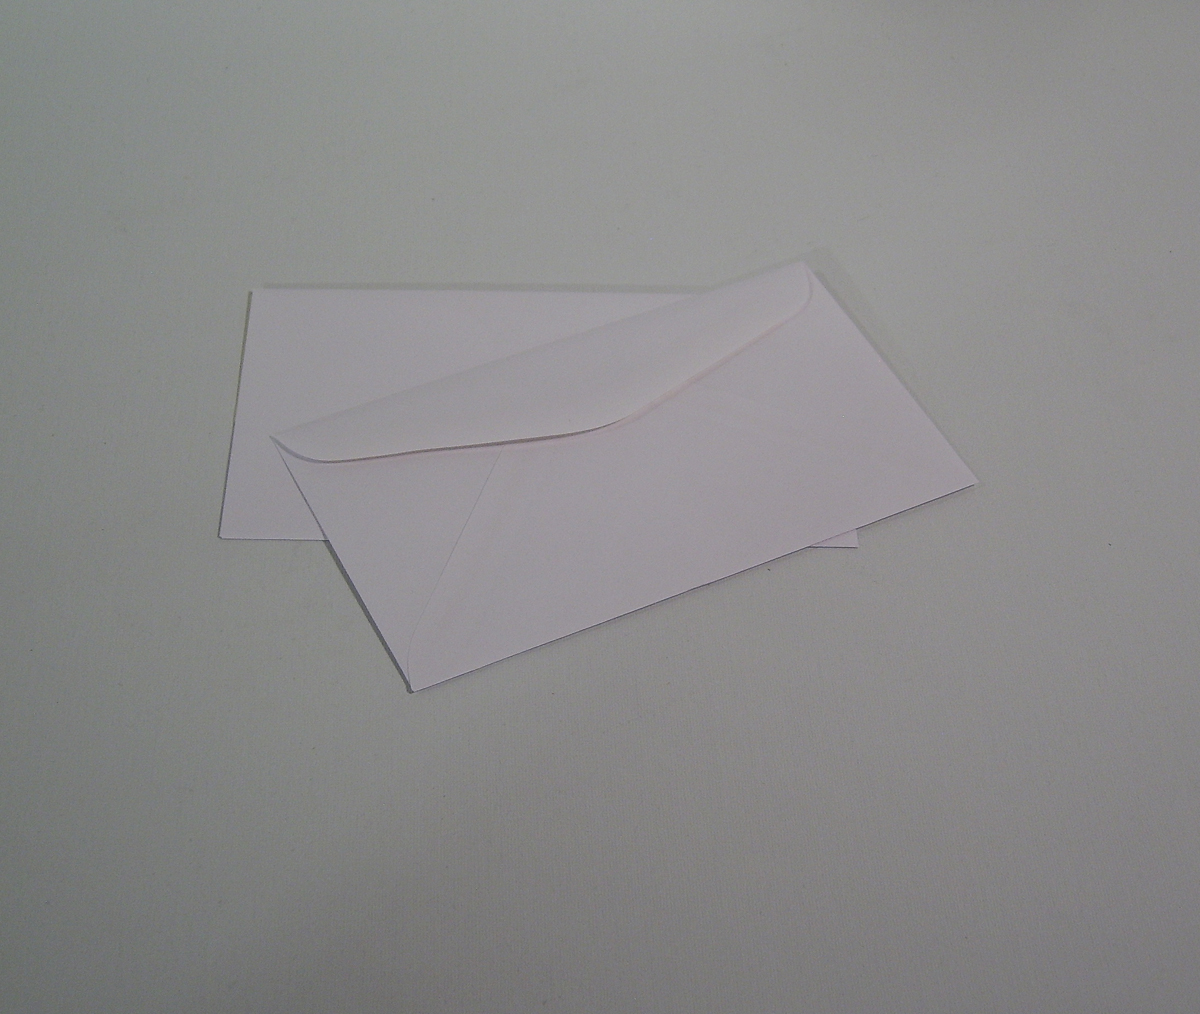 #6 3/4 Regular Envelope